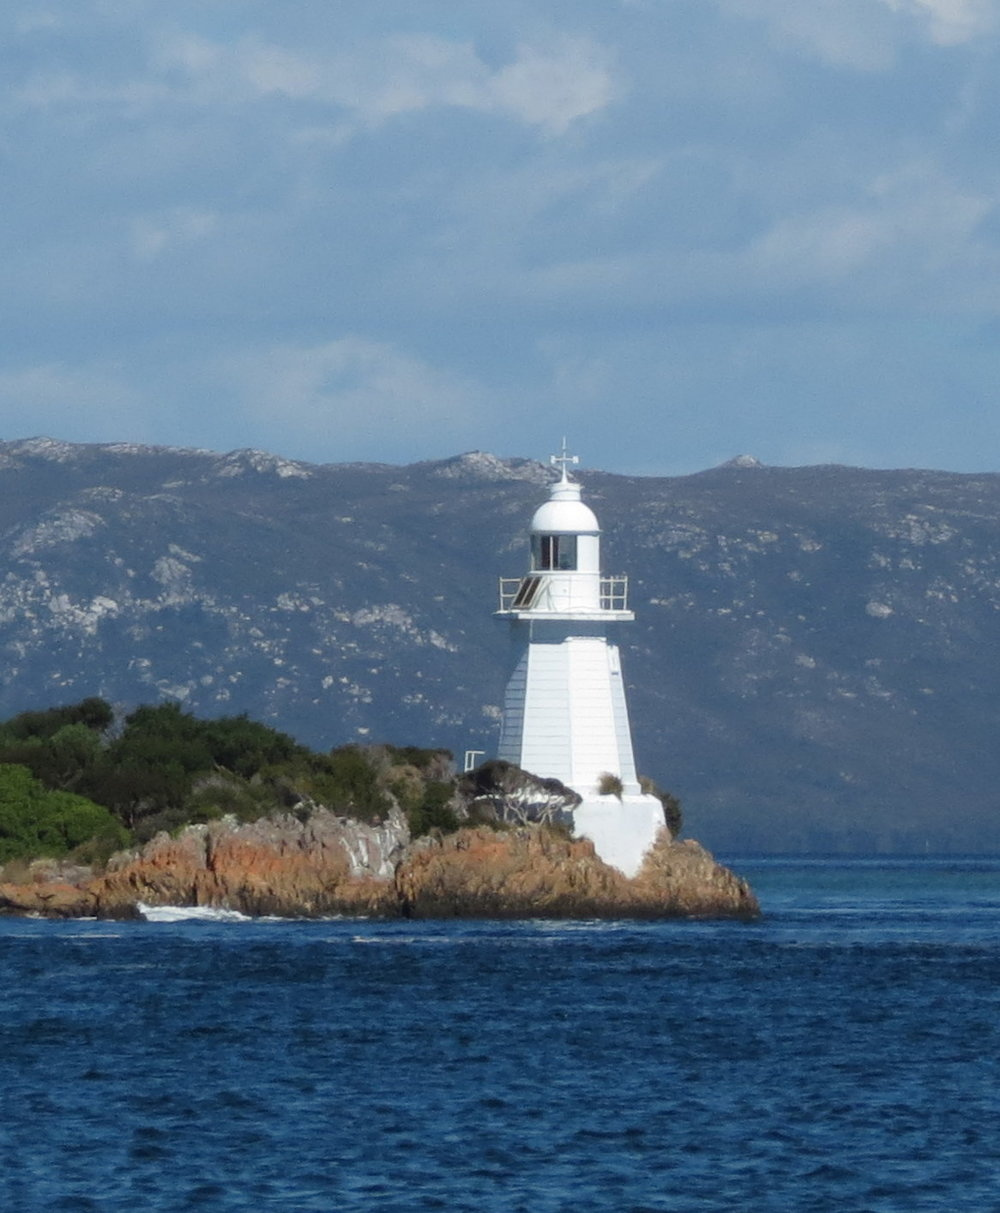 Entrance Island Light through Hell's Gate to Macquarie Harbour.